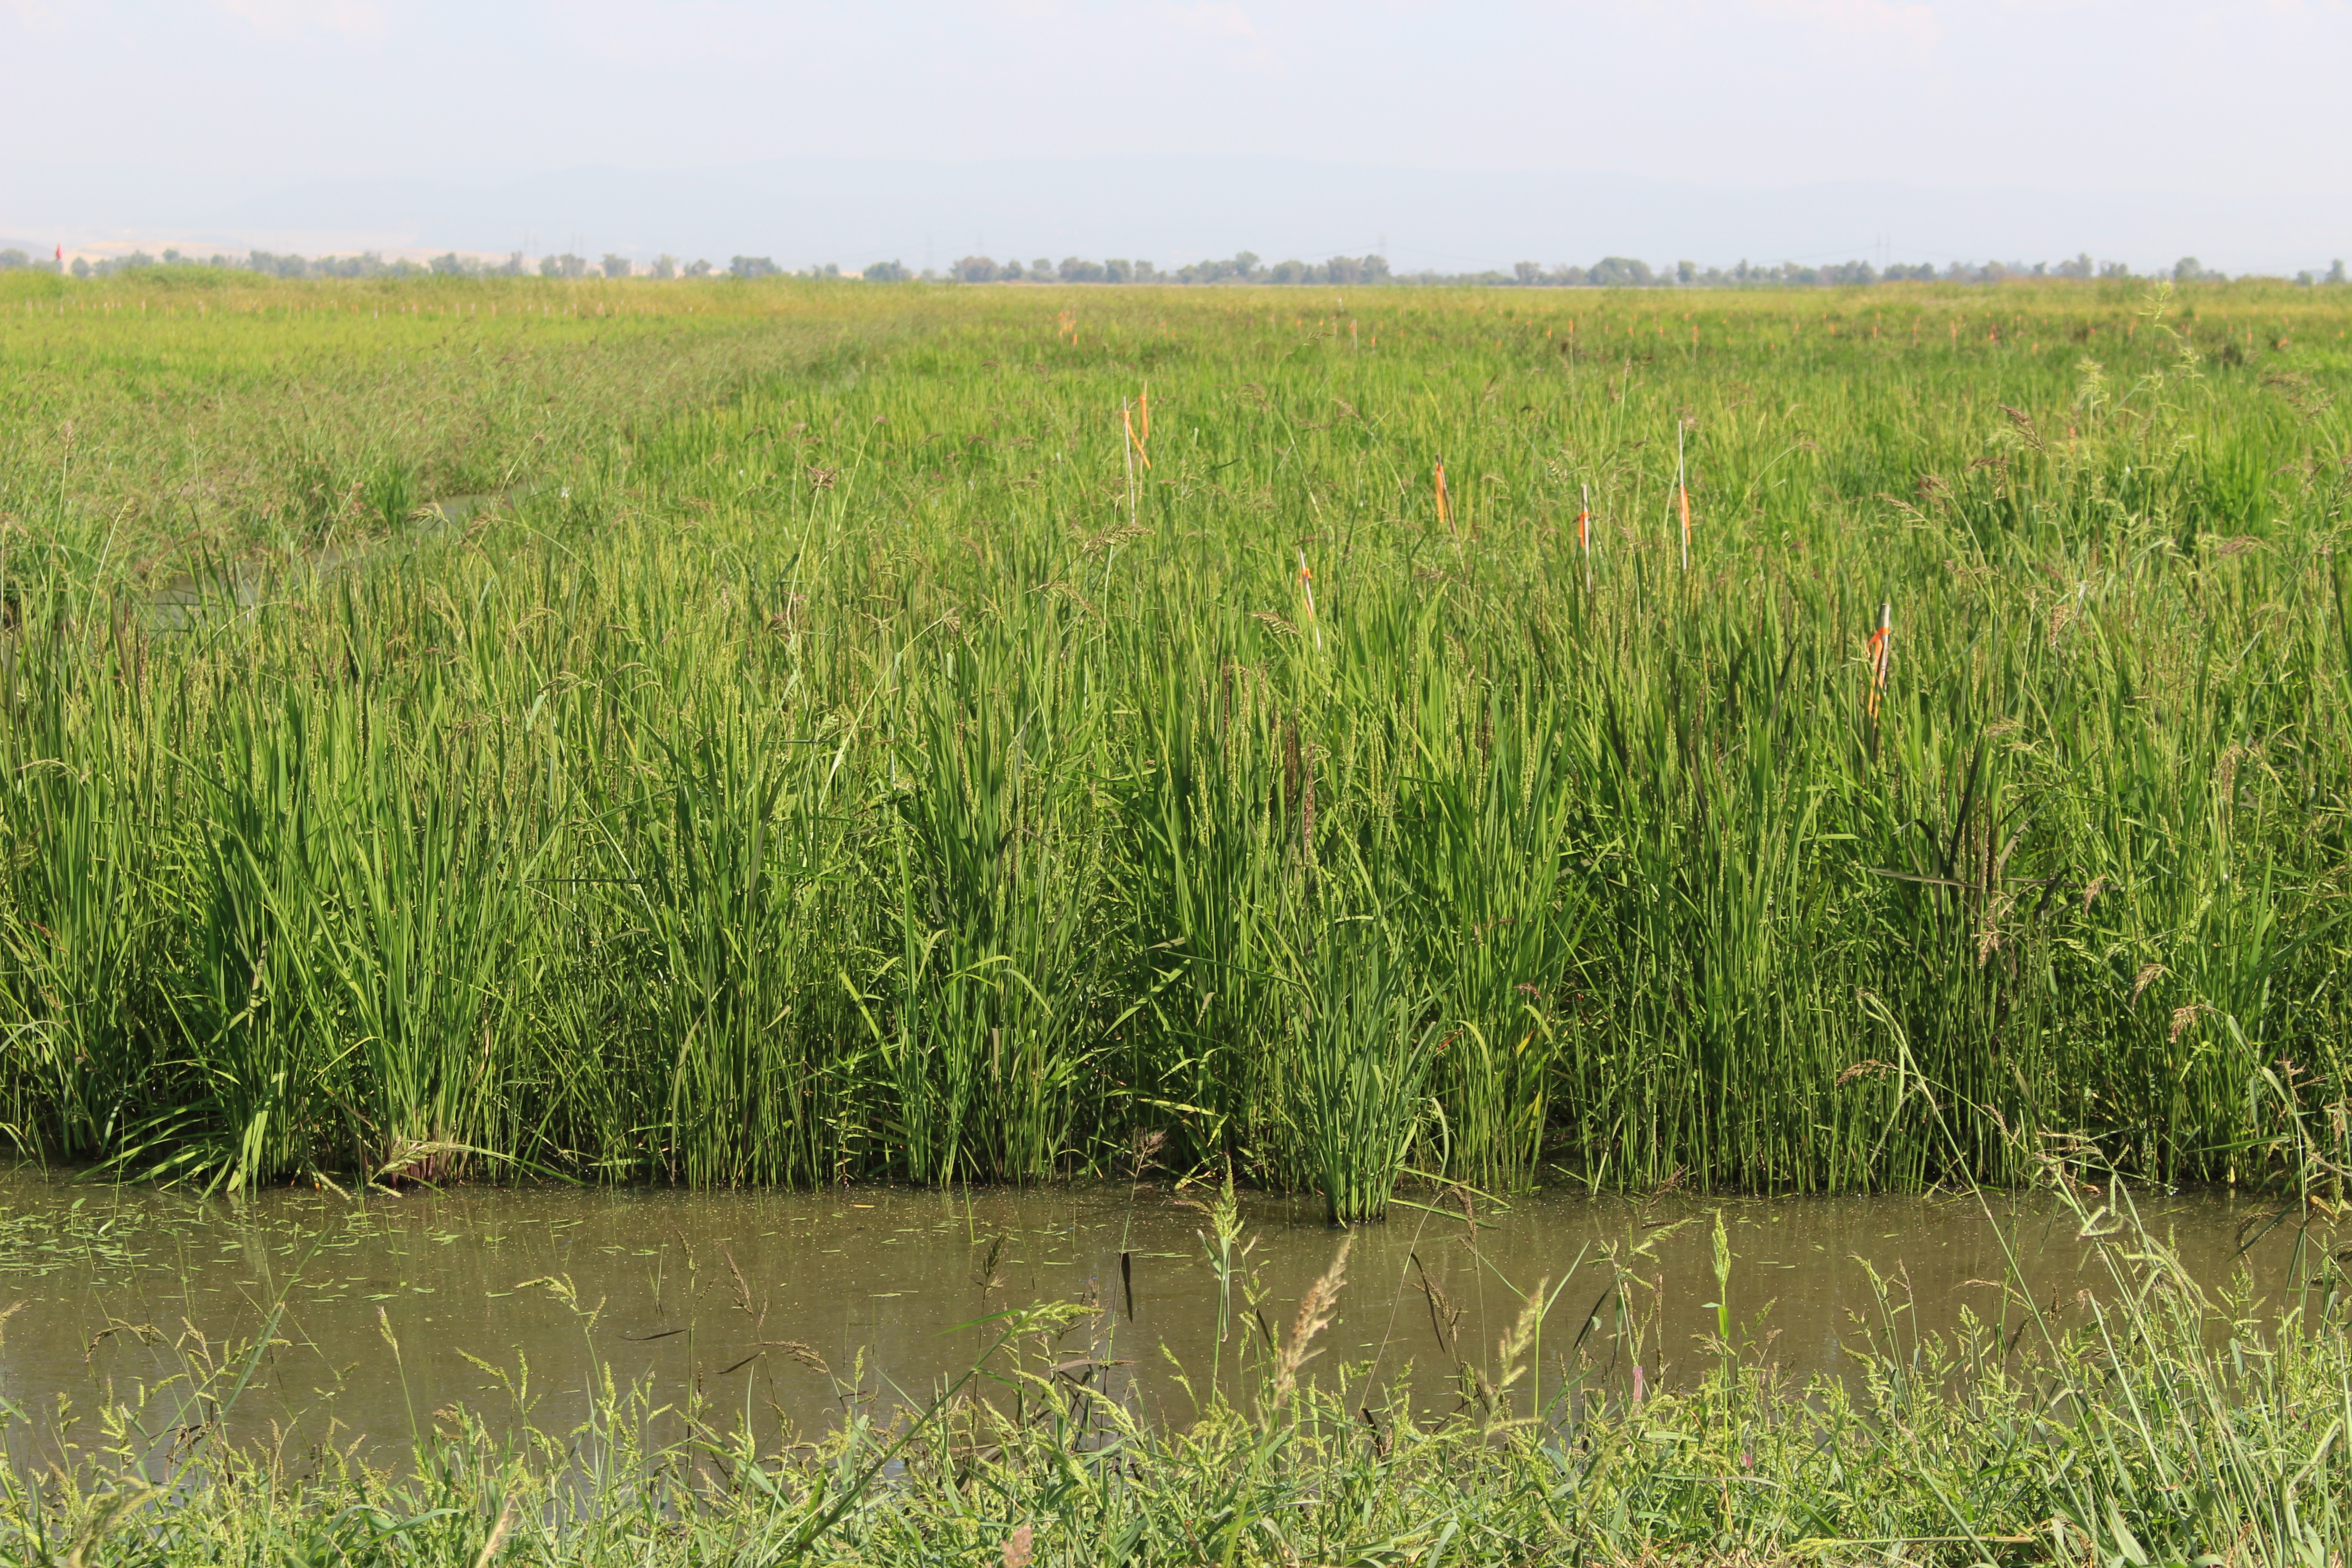 A picture of a flooded rice field on a sunny day